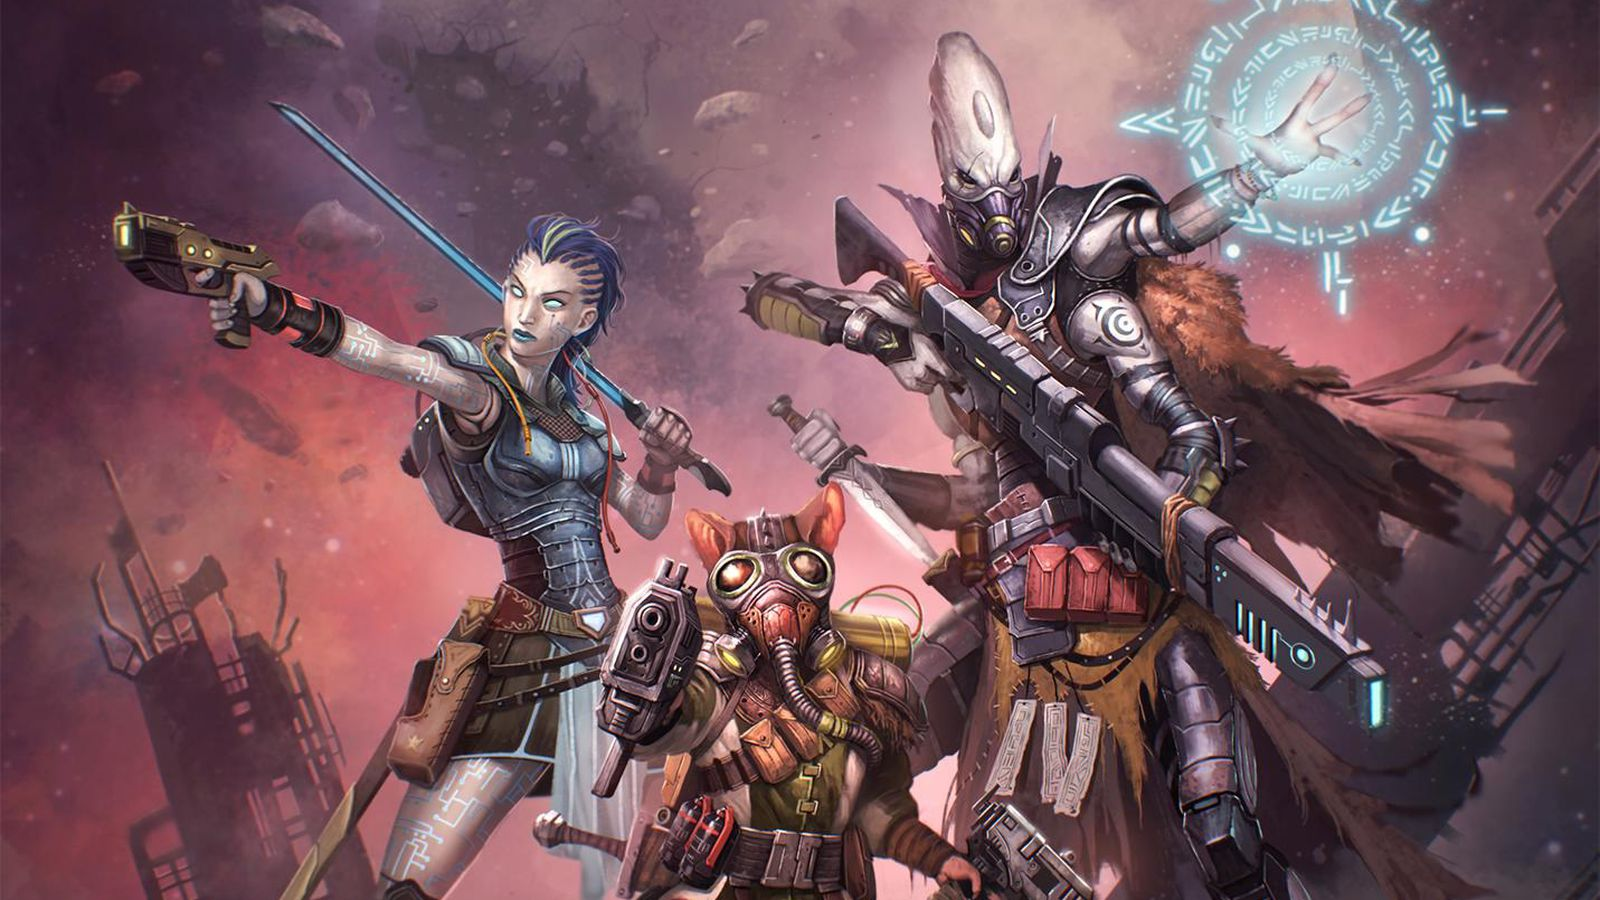 Fight Like A Girl Computer Wallpaper Starfinder Hopes To Do For Space Opera What D Amp D Has Done